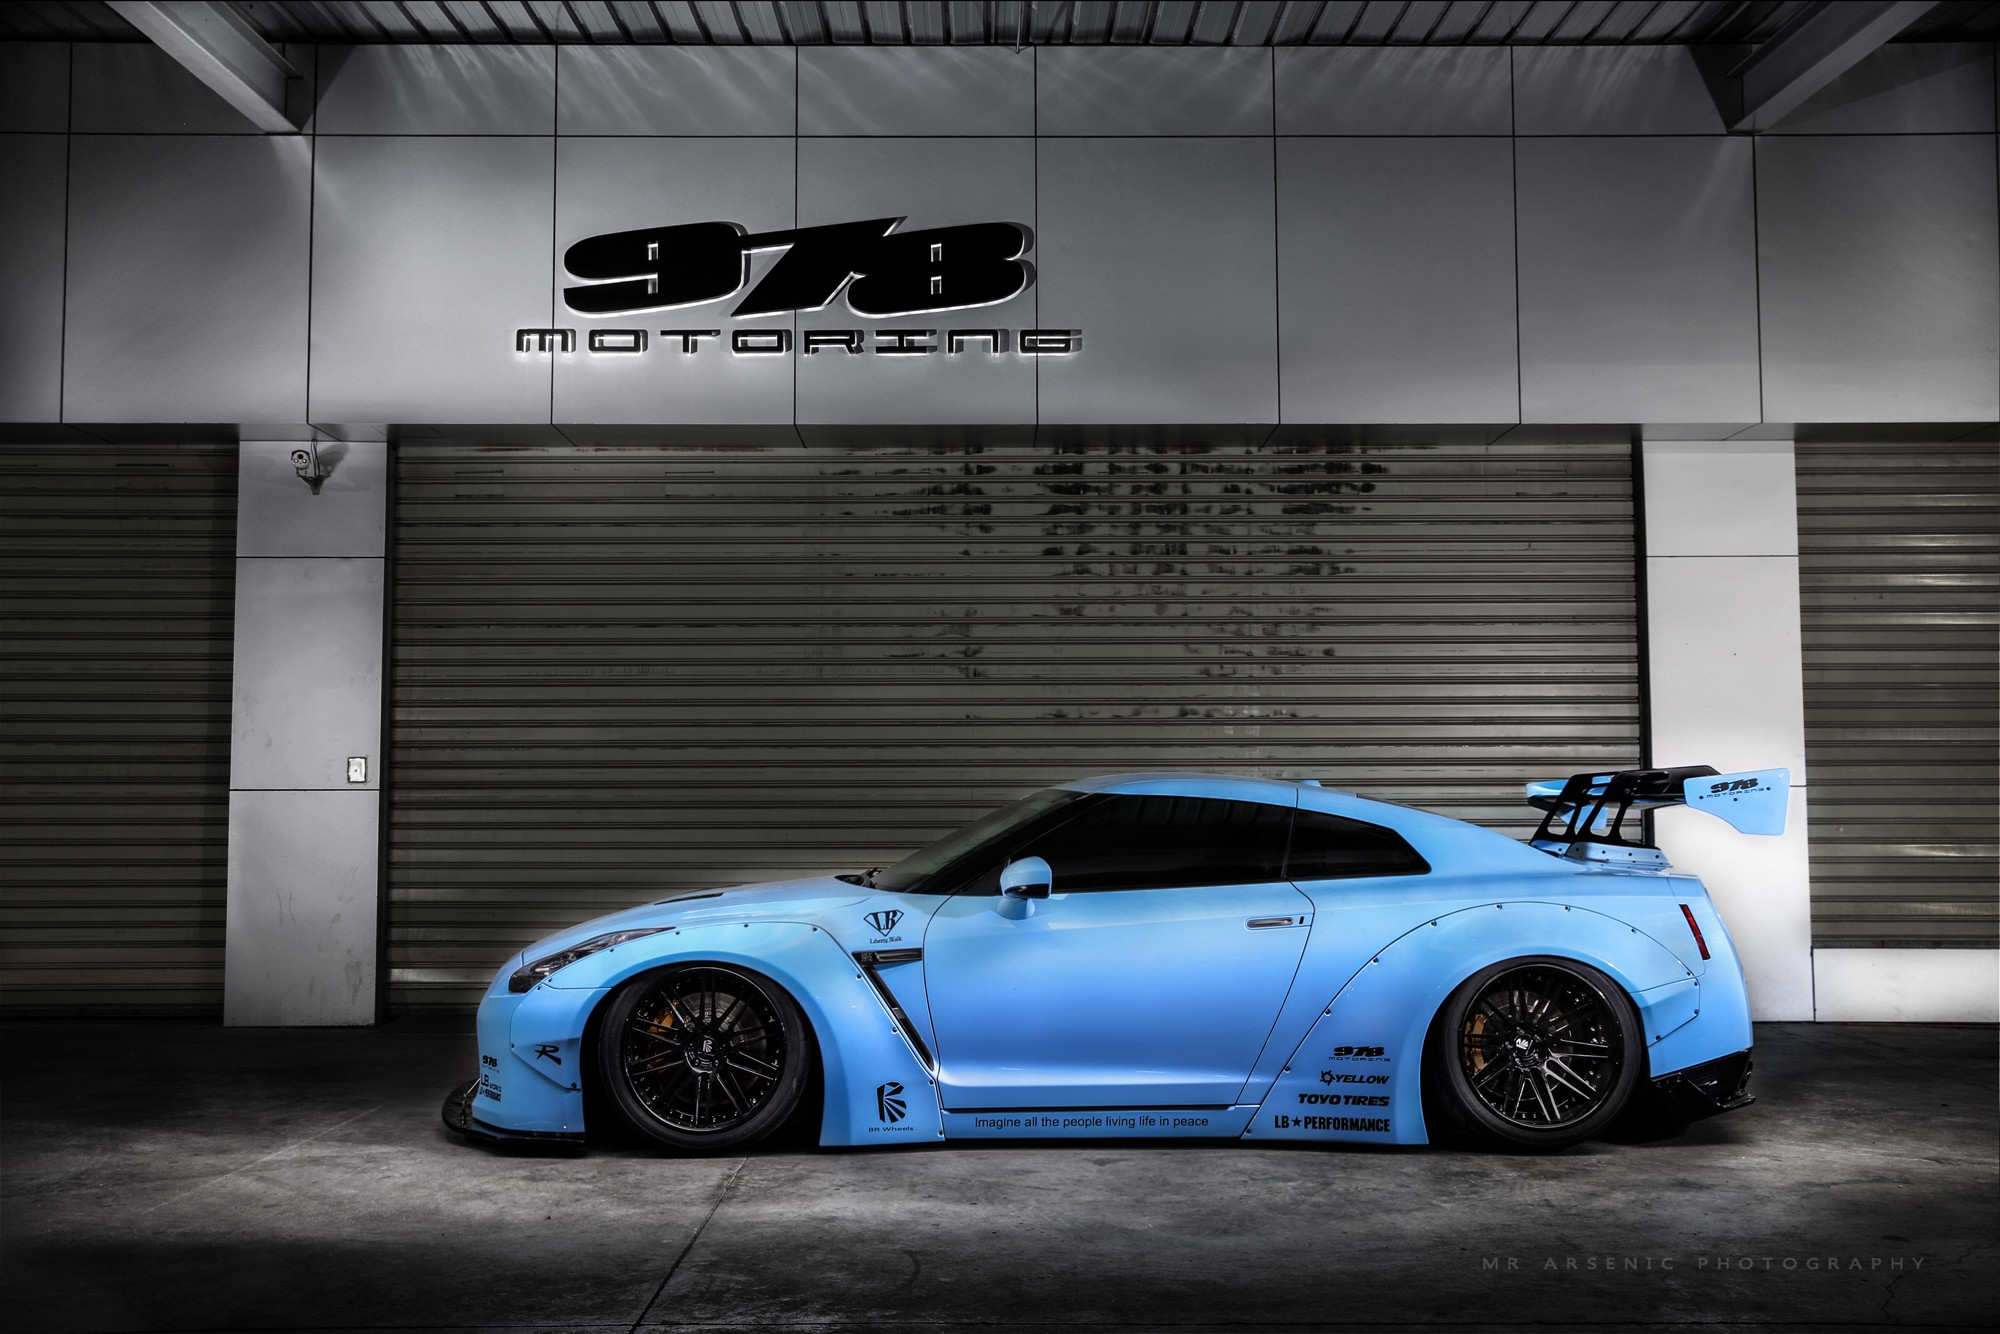 New Foreign Cars Wallpapers Nissan Gtr Lb Performance Super Car Wallpapers Hd